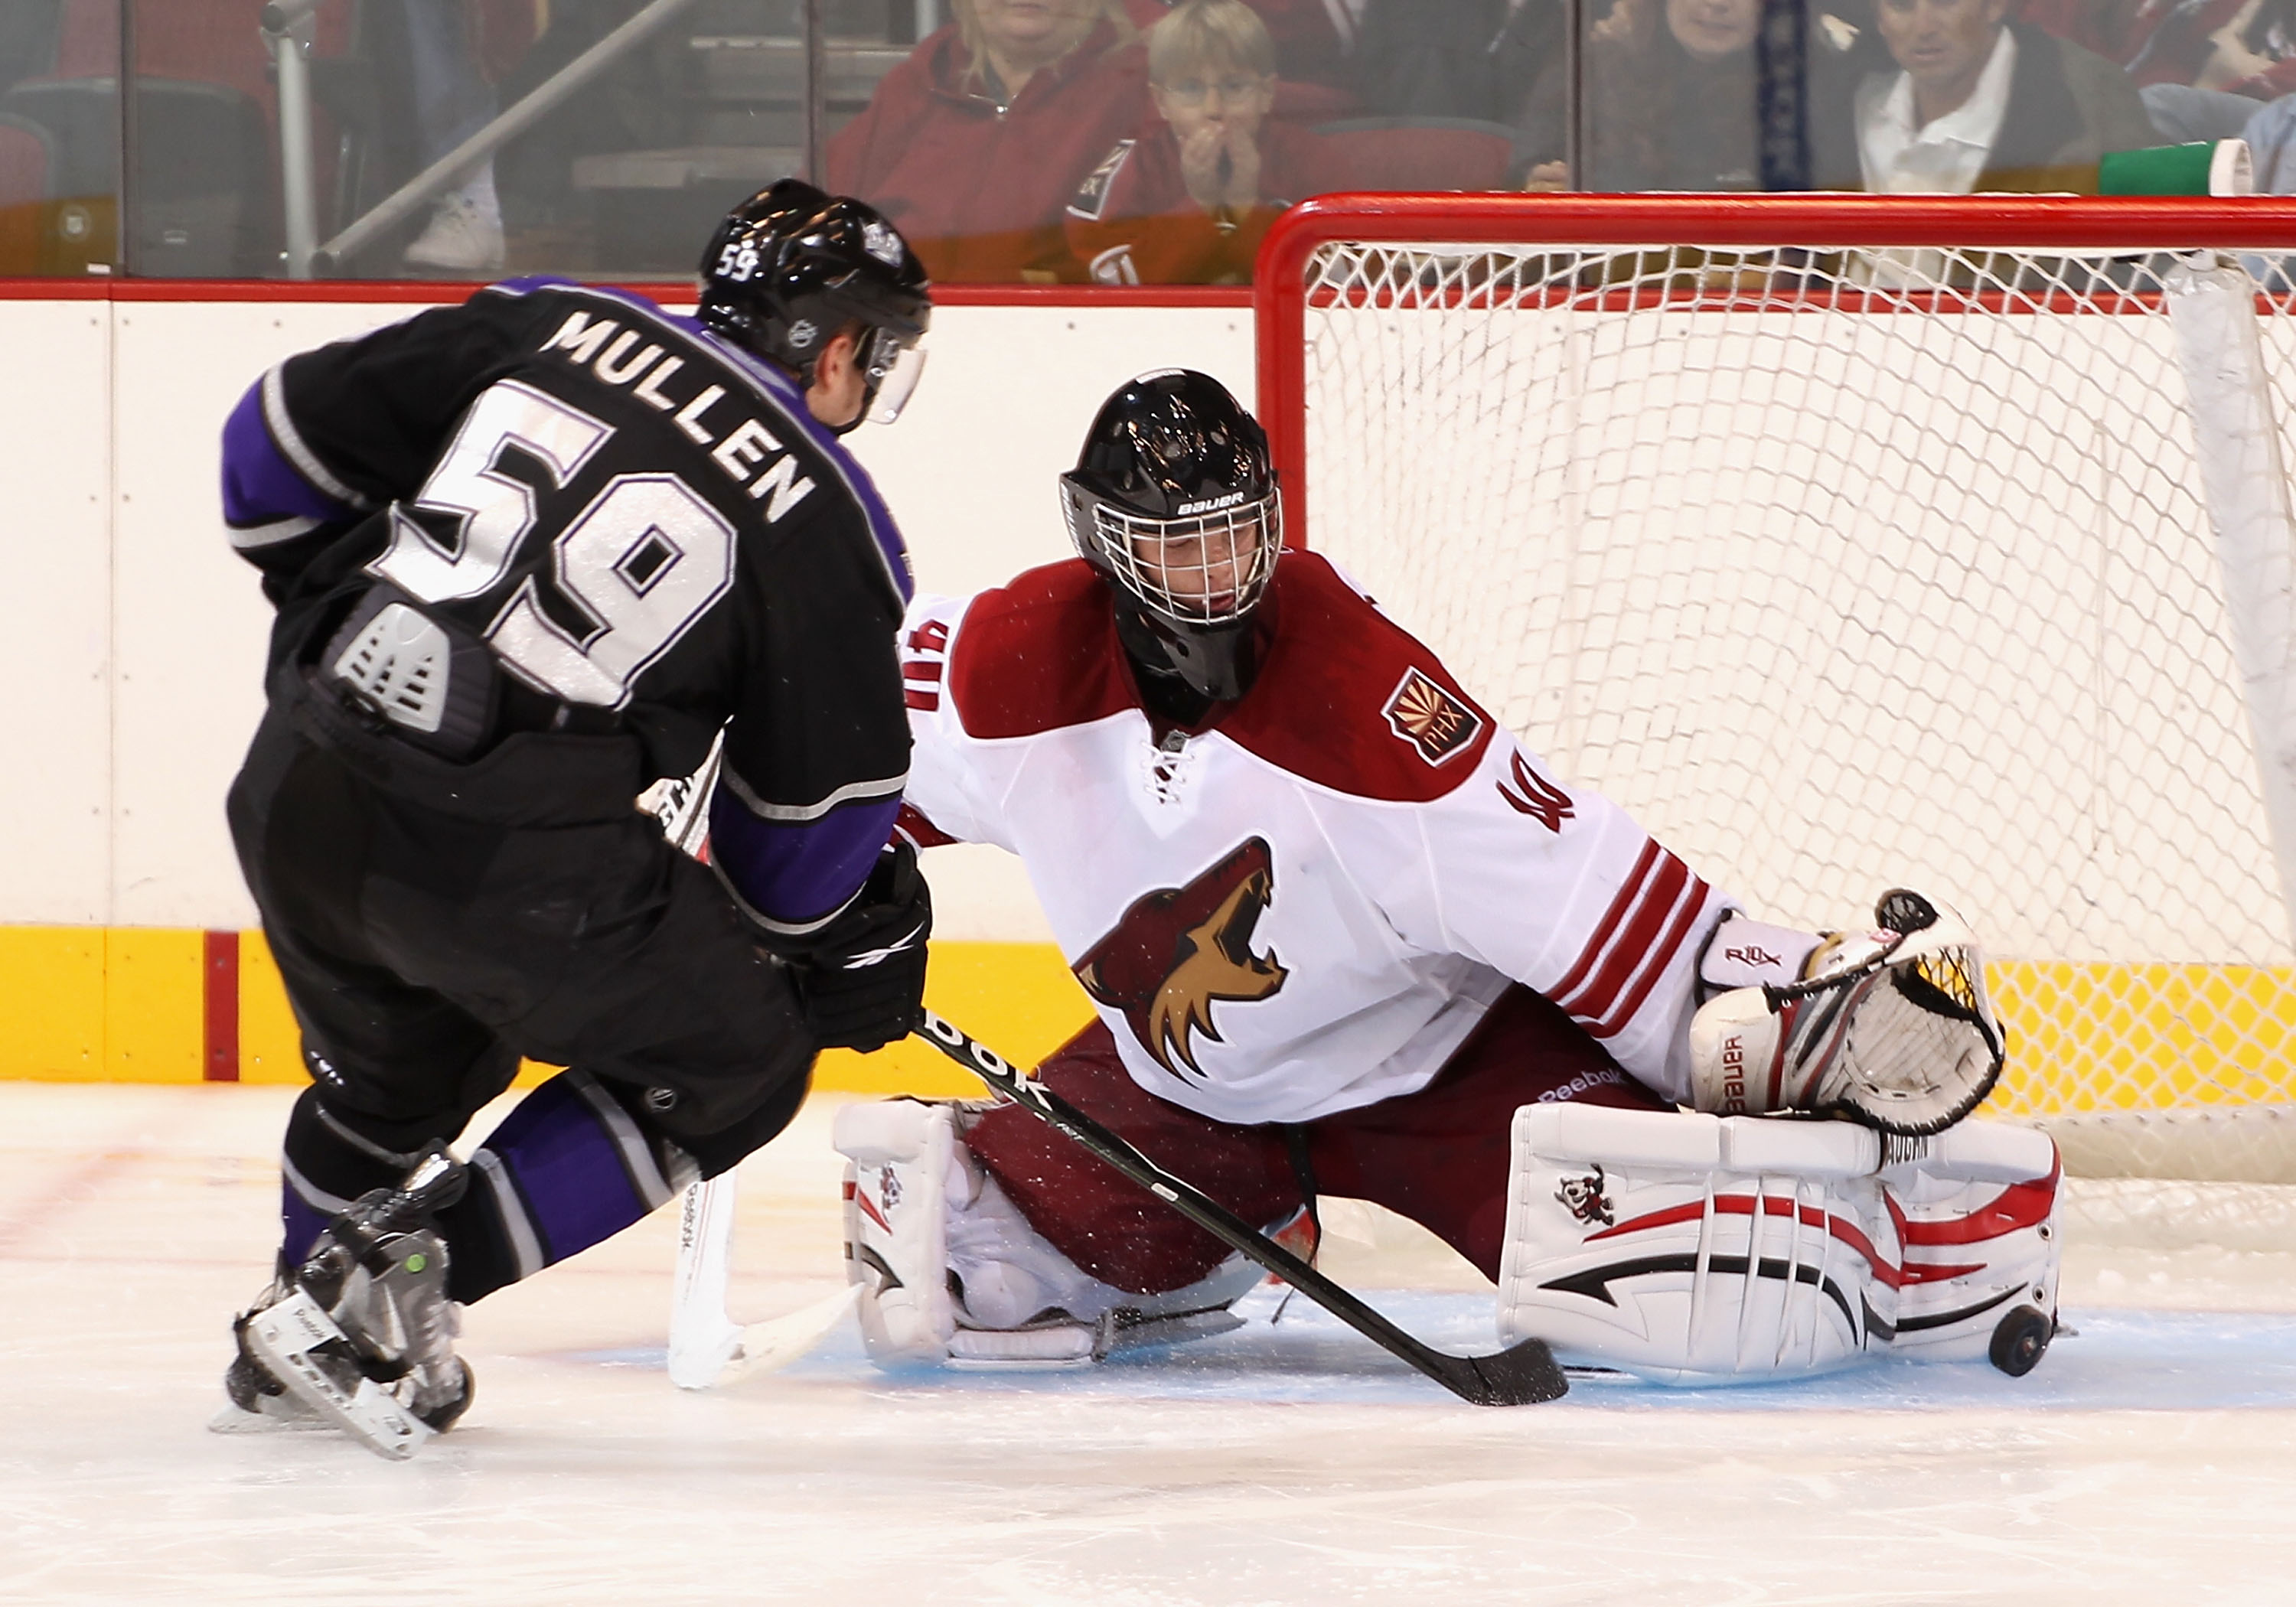 GLENDALE, AZ - SEPTEMBER 14:  Goaltender Mark Visentin #40 of the Phoenix Coyotes in action during the NHL Rookie game against the Los Angeles Kings at Jobing.com Arena on September 14, 2010 in Glendale, Arizona.  (Photo by Christian Petersen/Getty Images